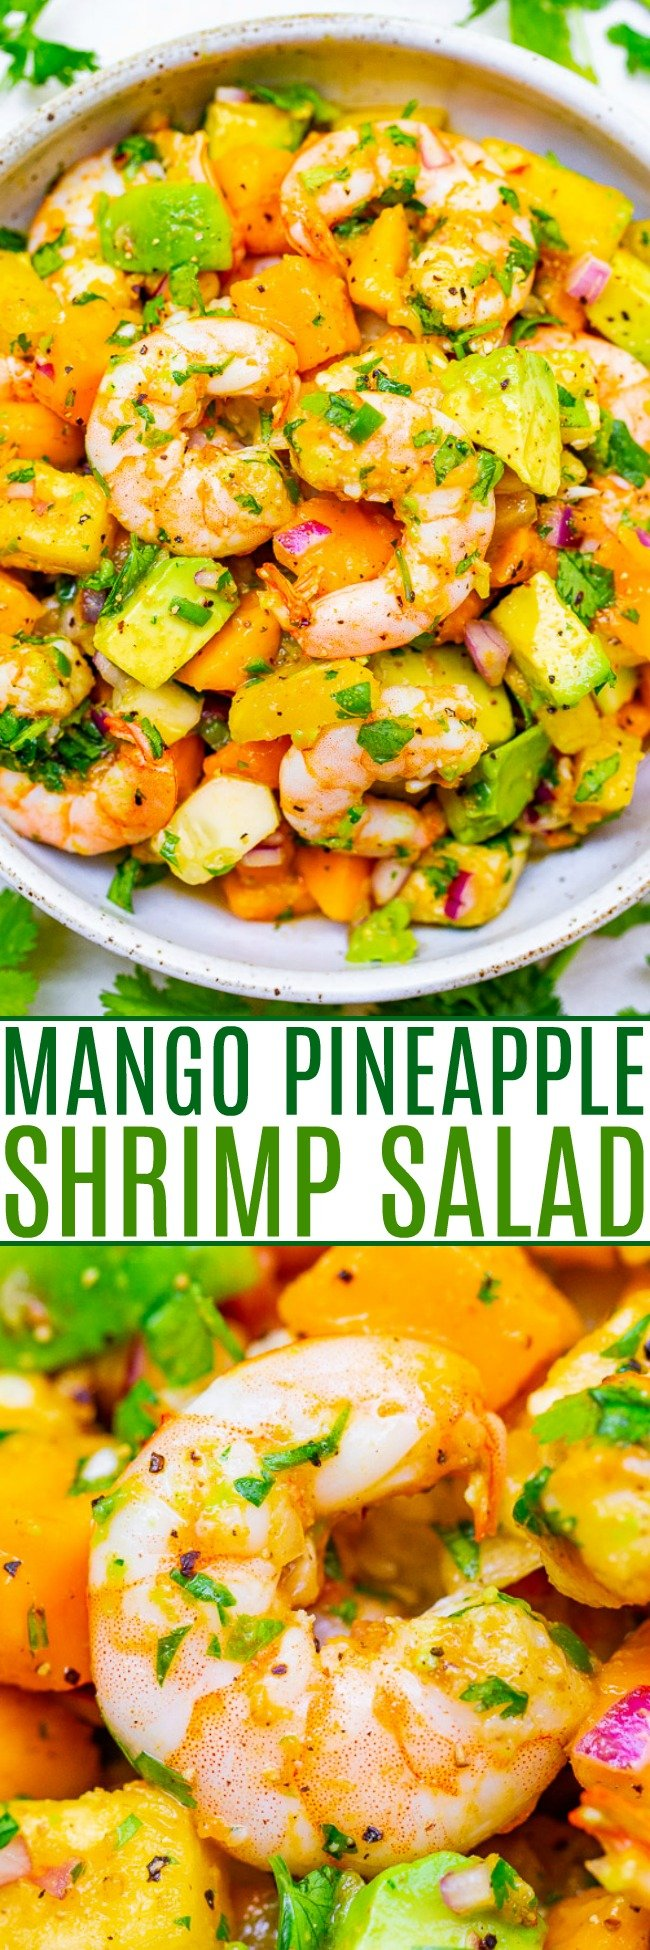 Mango Pineapple Shrimp Salad - With tropical fruit, avocado, red onion, lime juice, cilantro, and plump JUICY shrimp, this EASY 15-minute recipe will become a new FAVORITE!! Healthy and light with an assortment of wonderful flavors in every bite!!